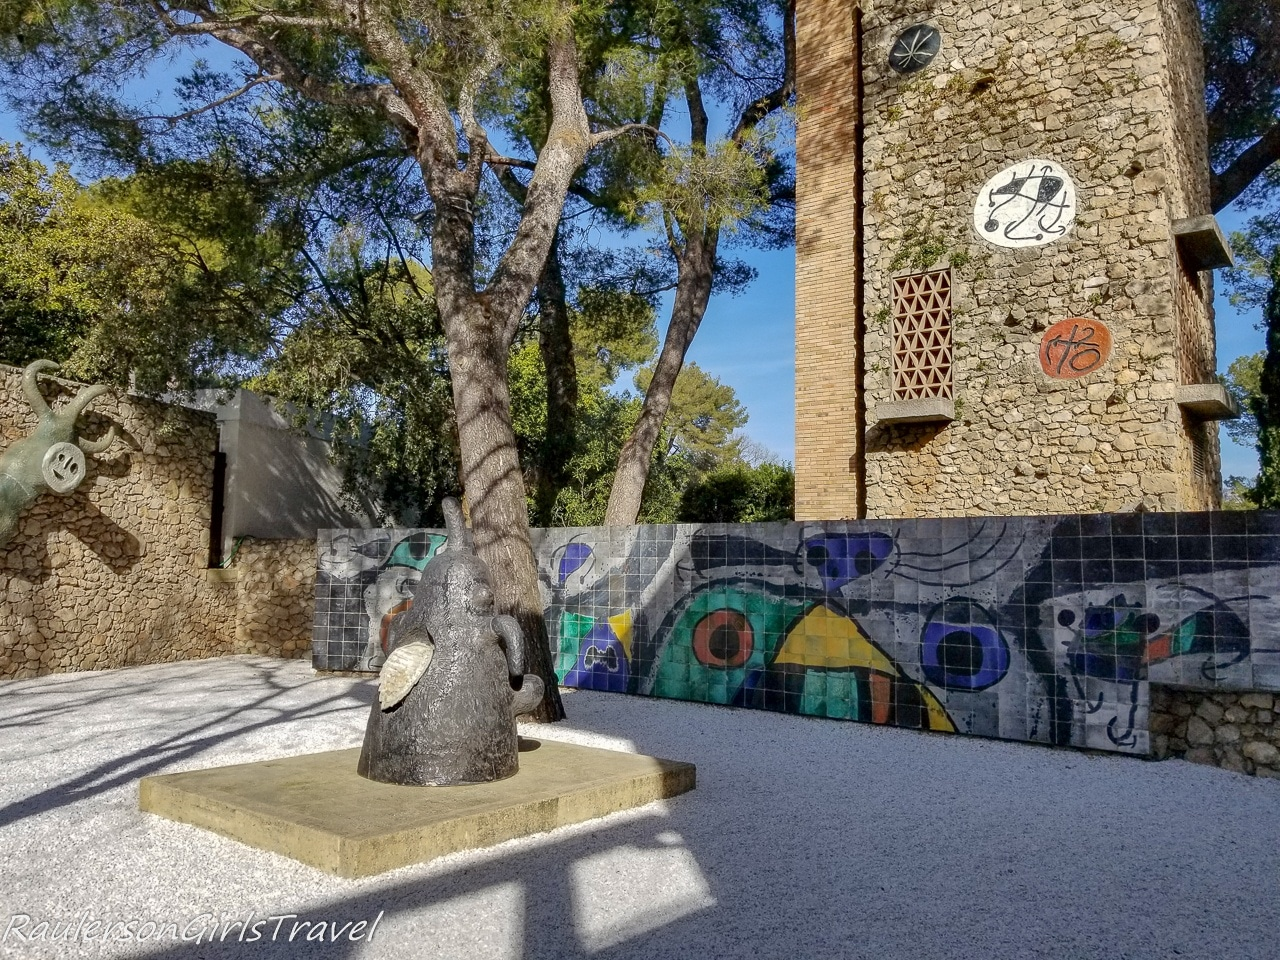 courtyard to The Miró Labyrinth